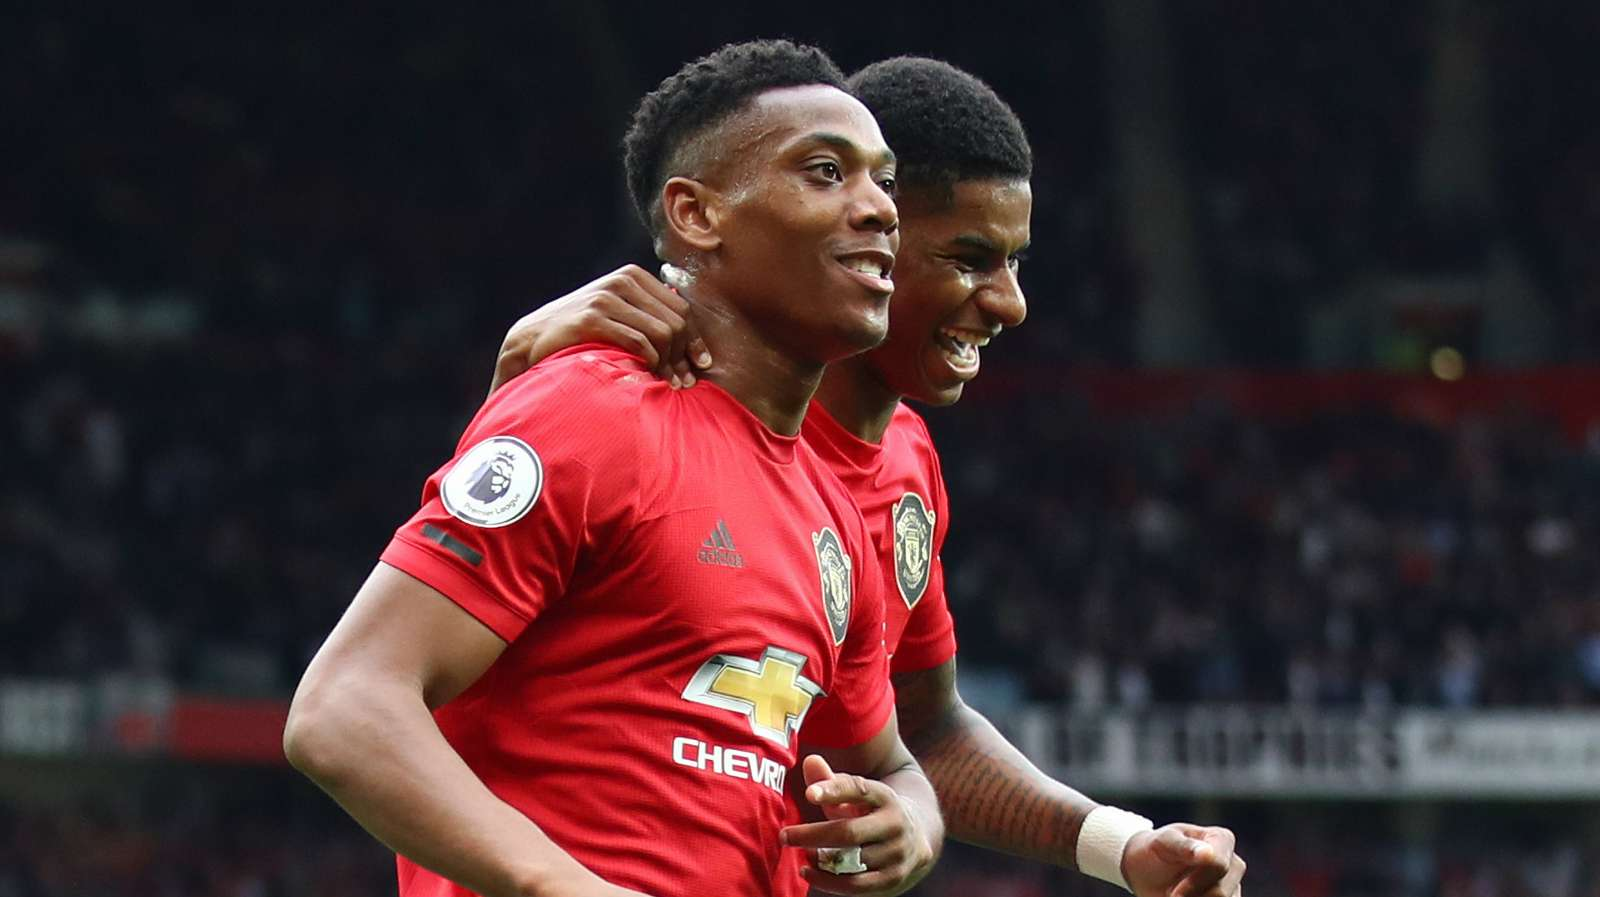 Photo of Man United 4-0 Chelsea: Rashford and Martial silence Lukaku doubters